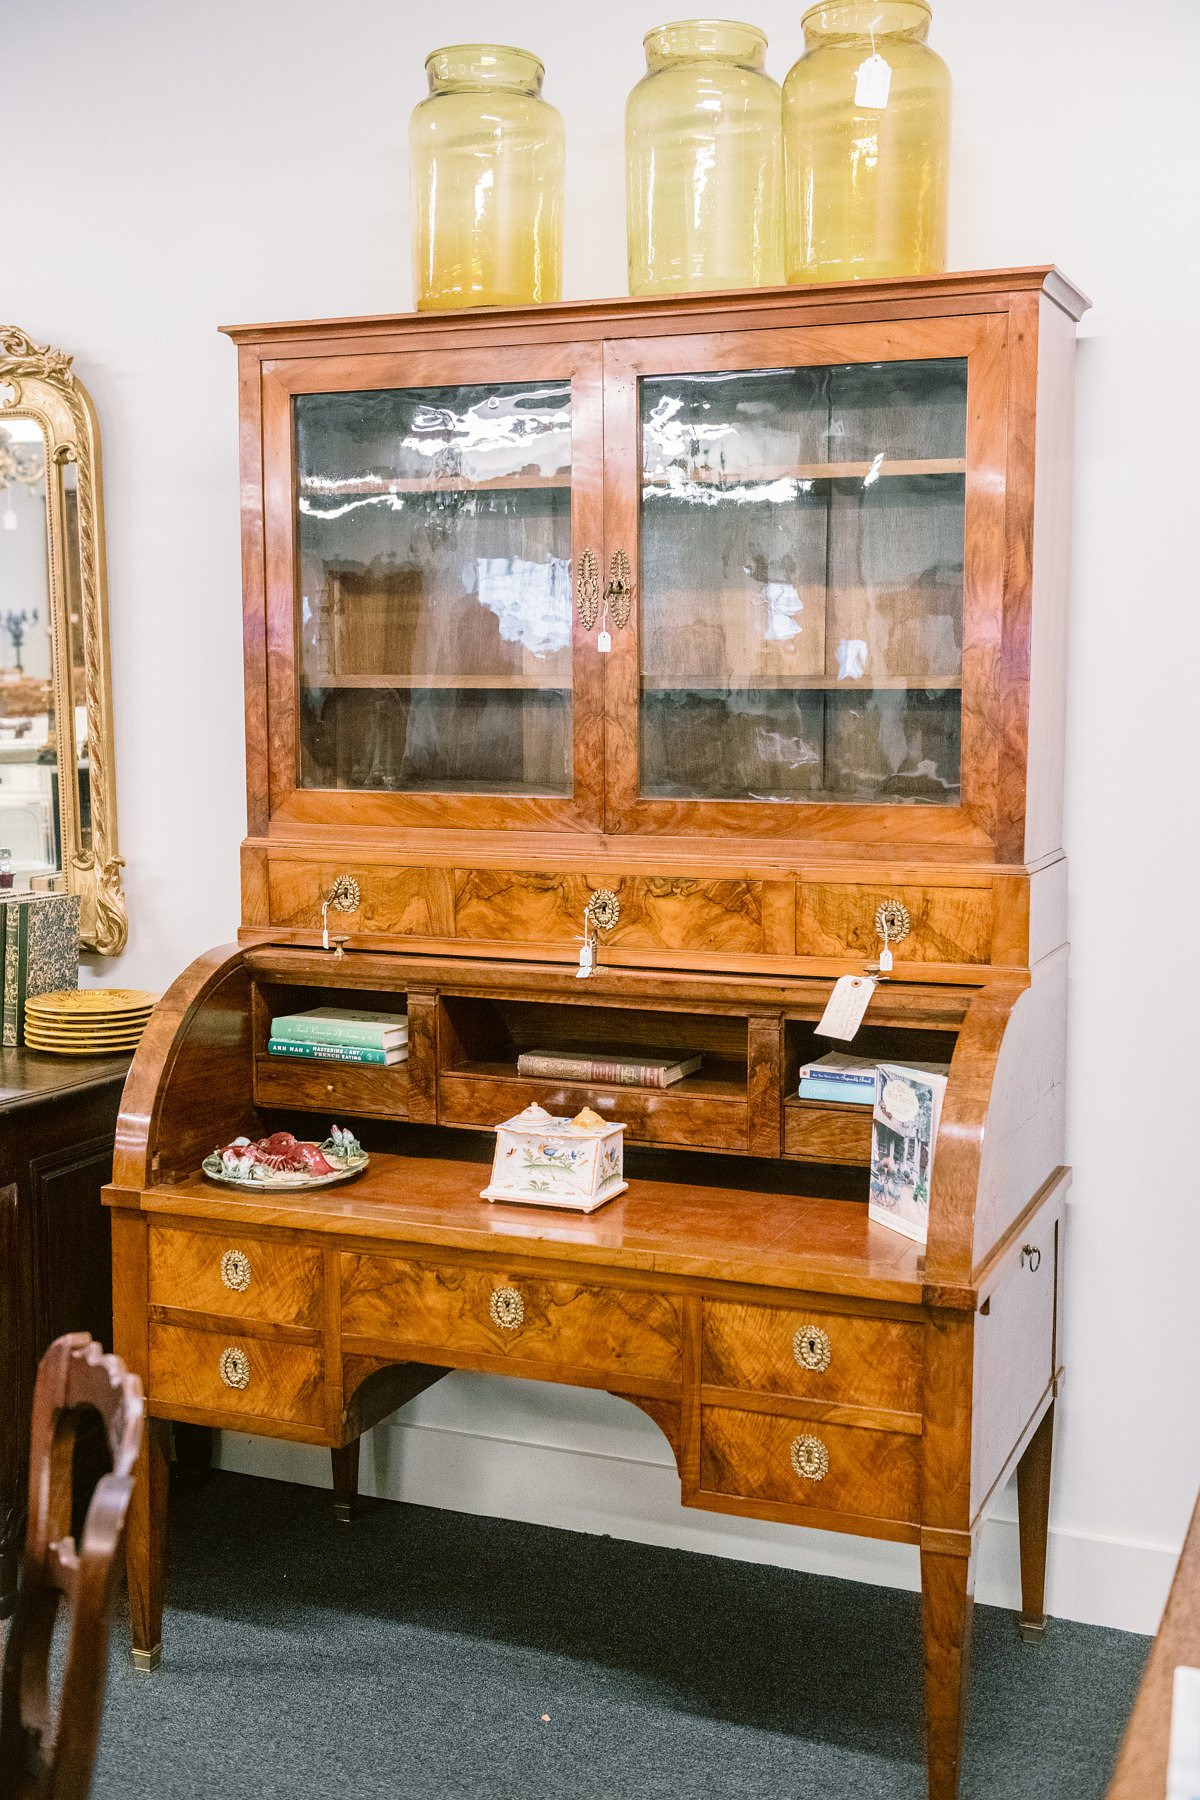 We Buy Antique Furniture New How to Shop for Antique Furniture for Your Home